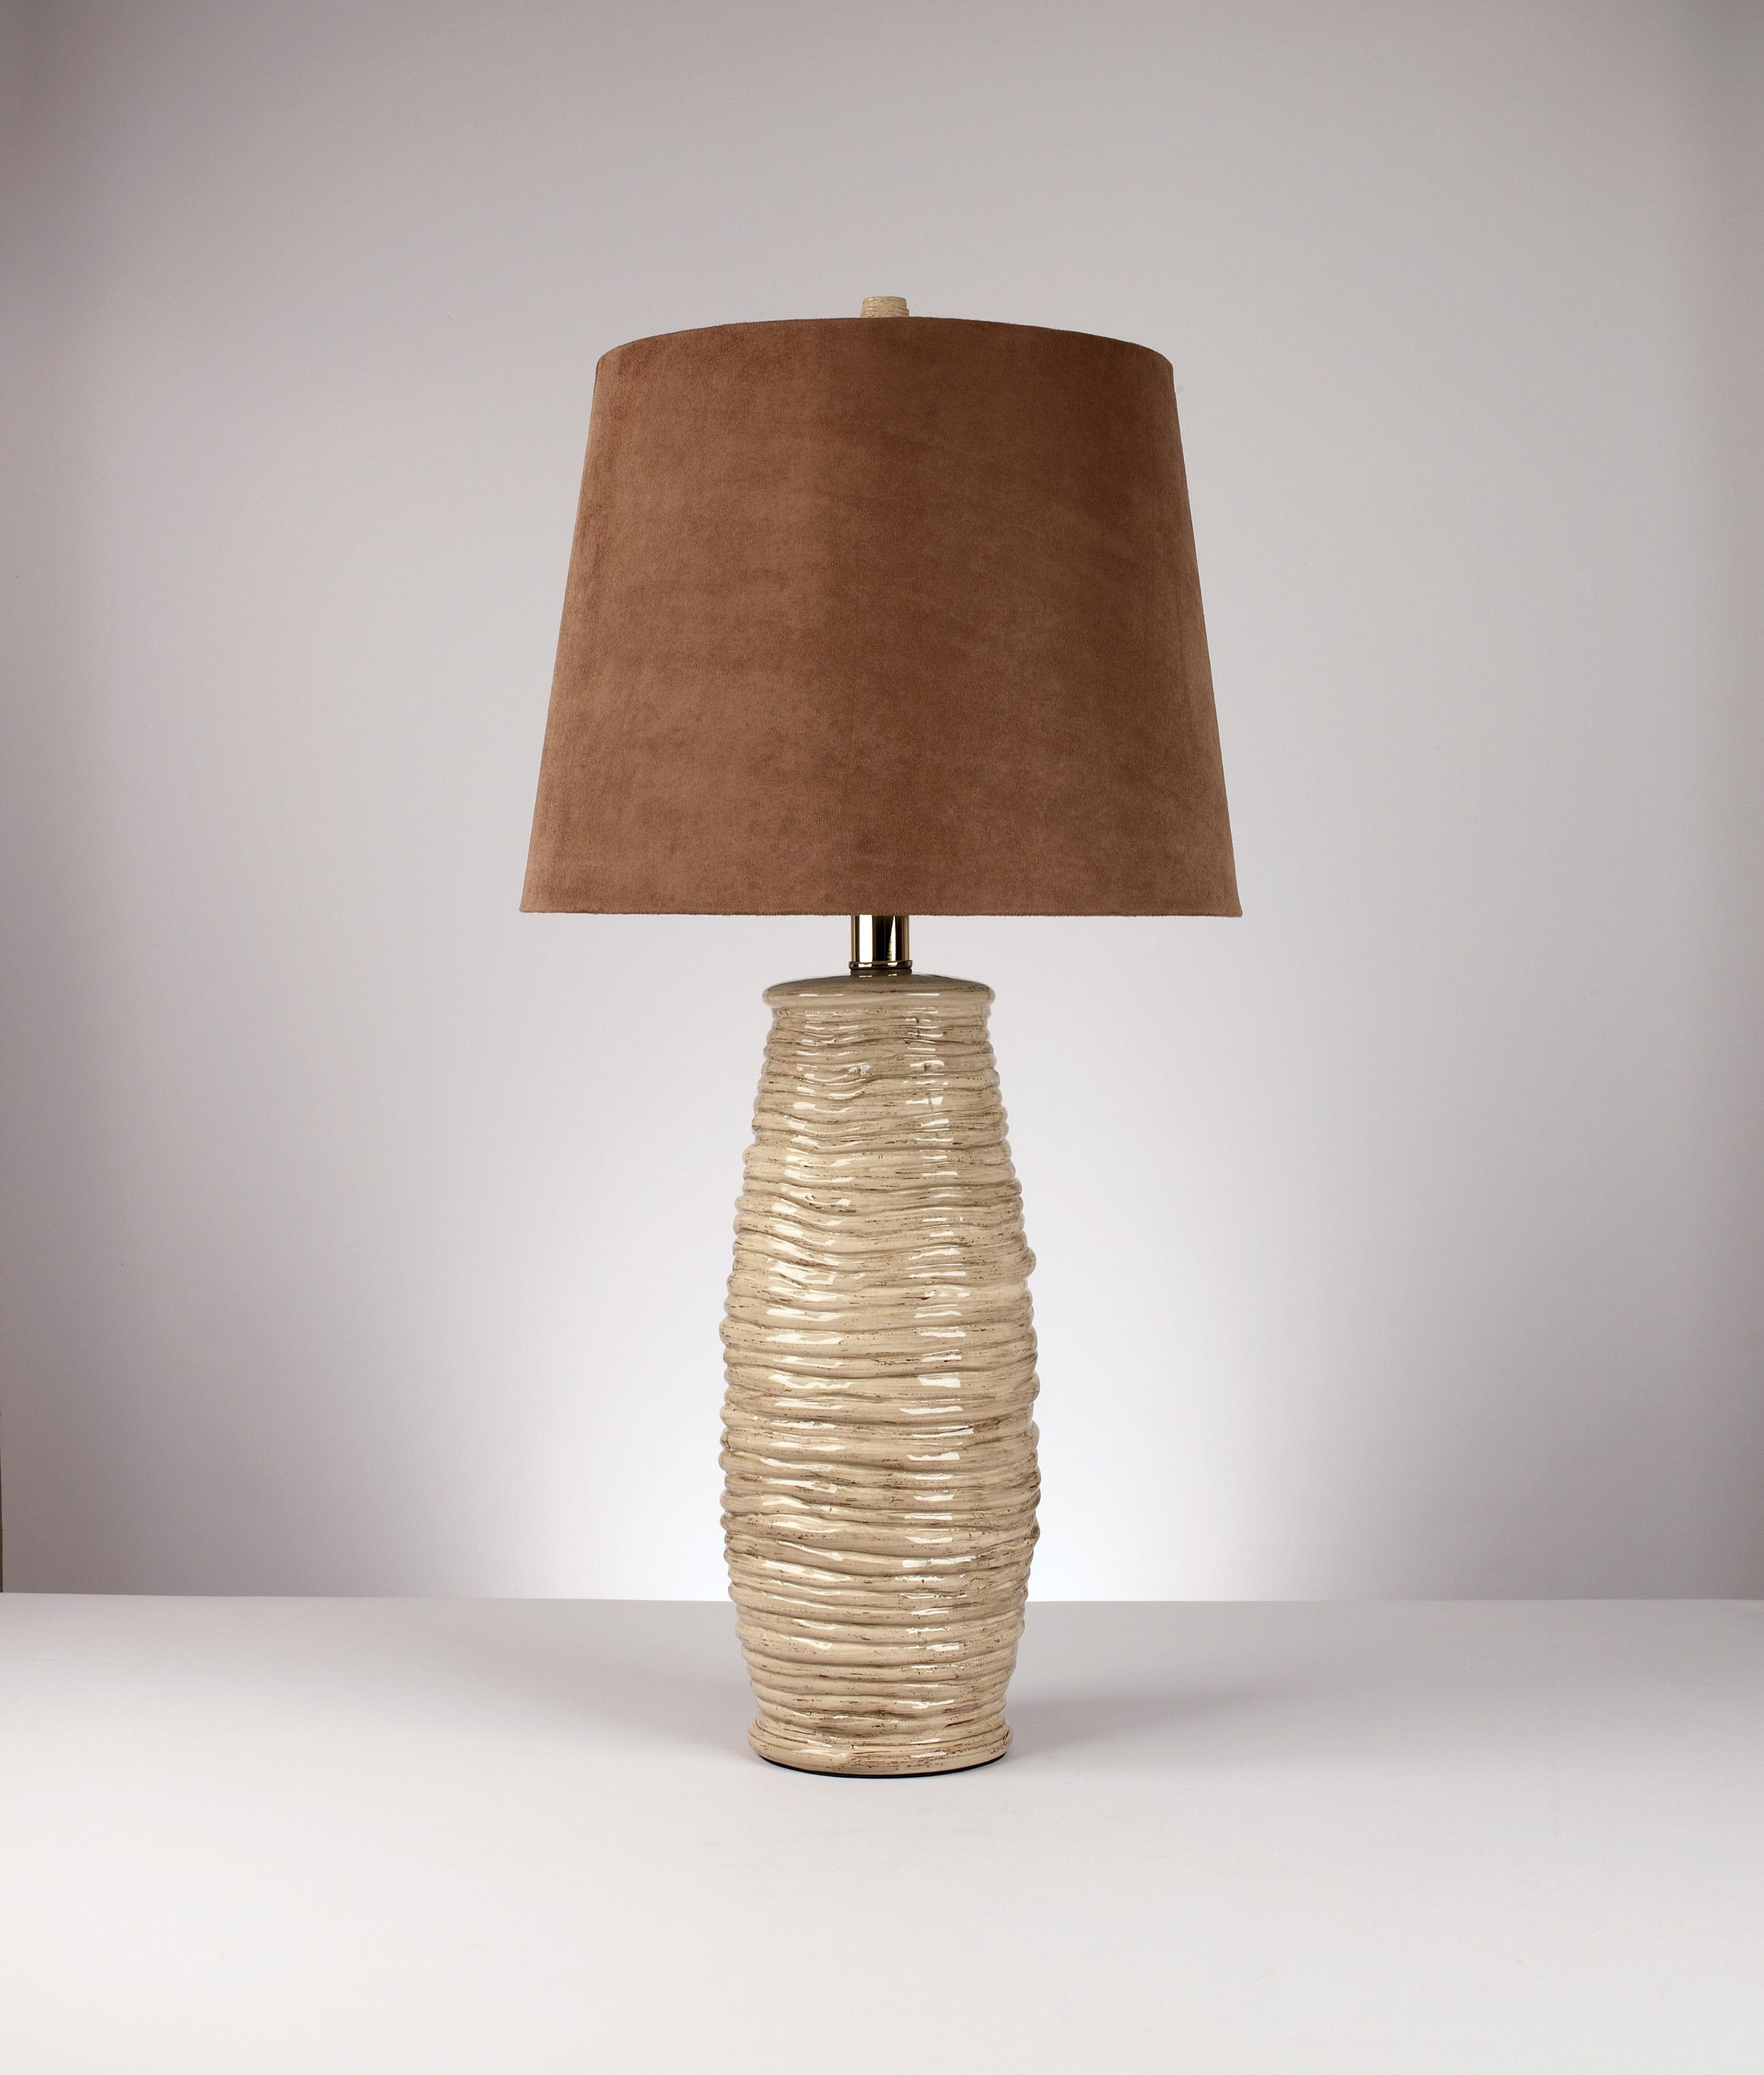 Signature Design by Ashley Lamps - Contemporary Set of 2 Haldis Table Lamps - Item Number: L136534